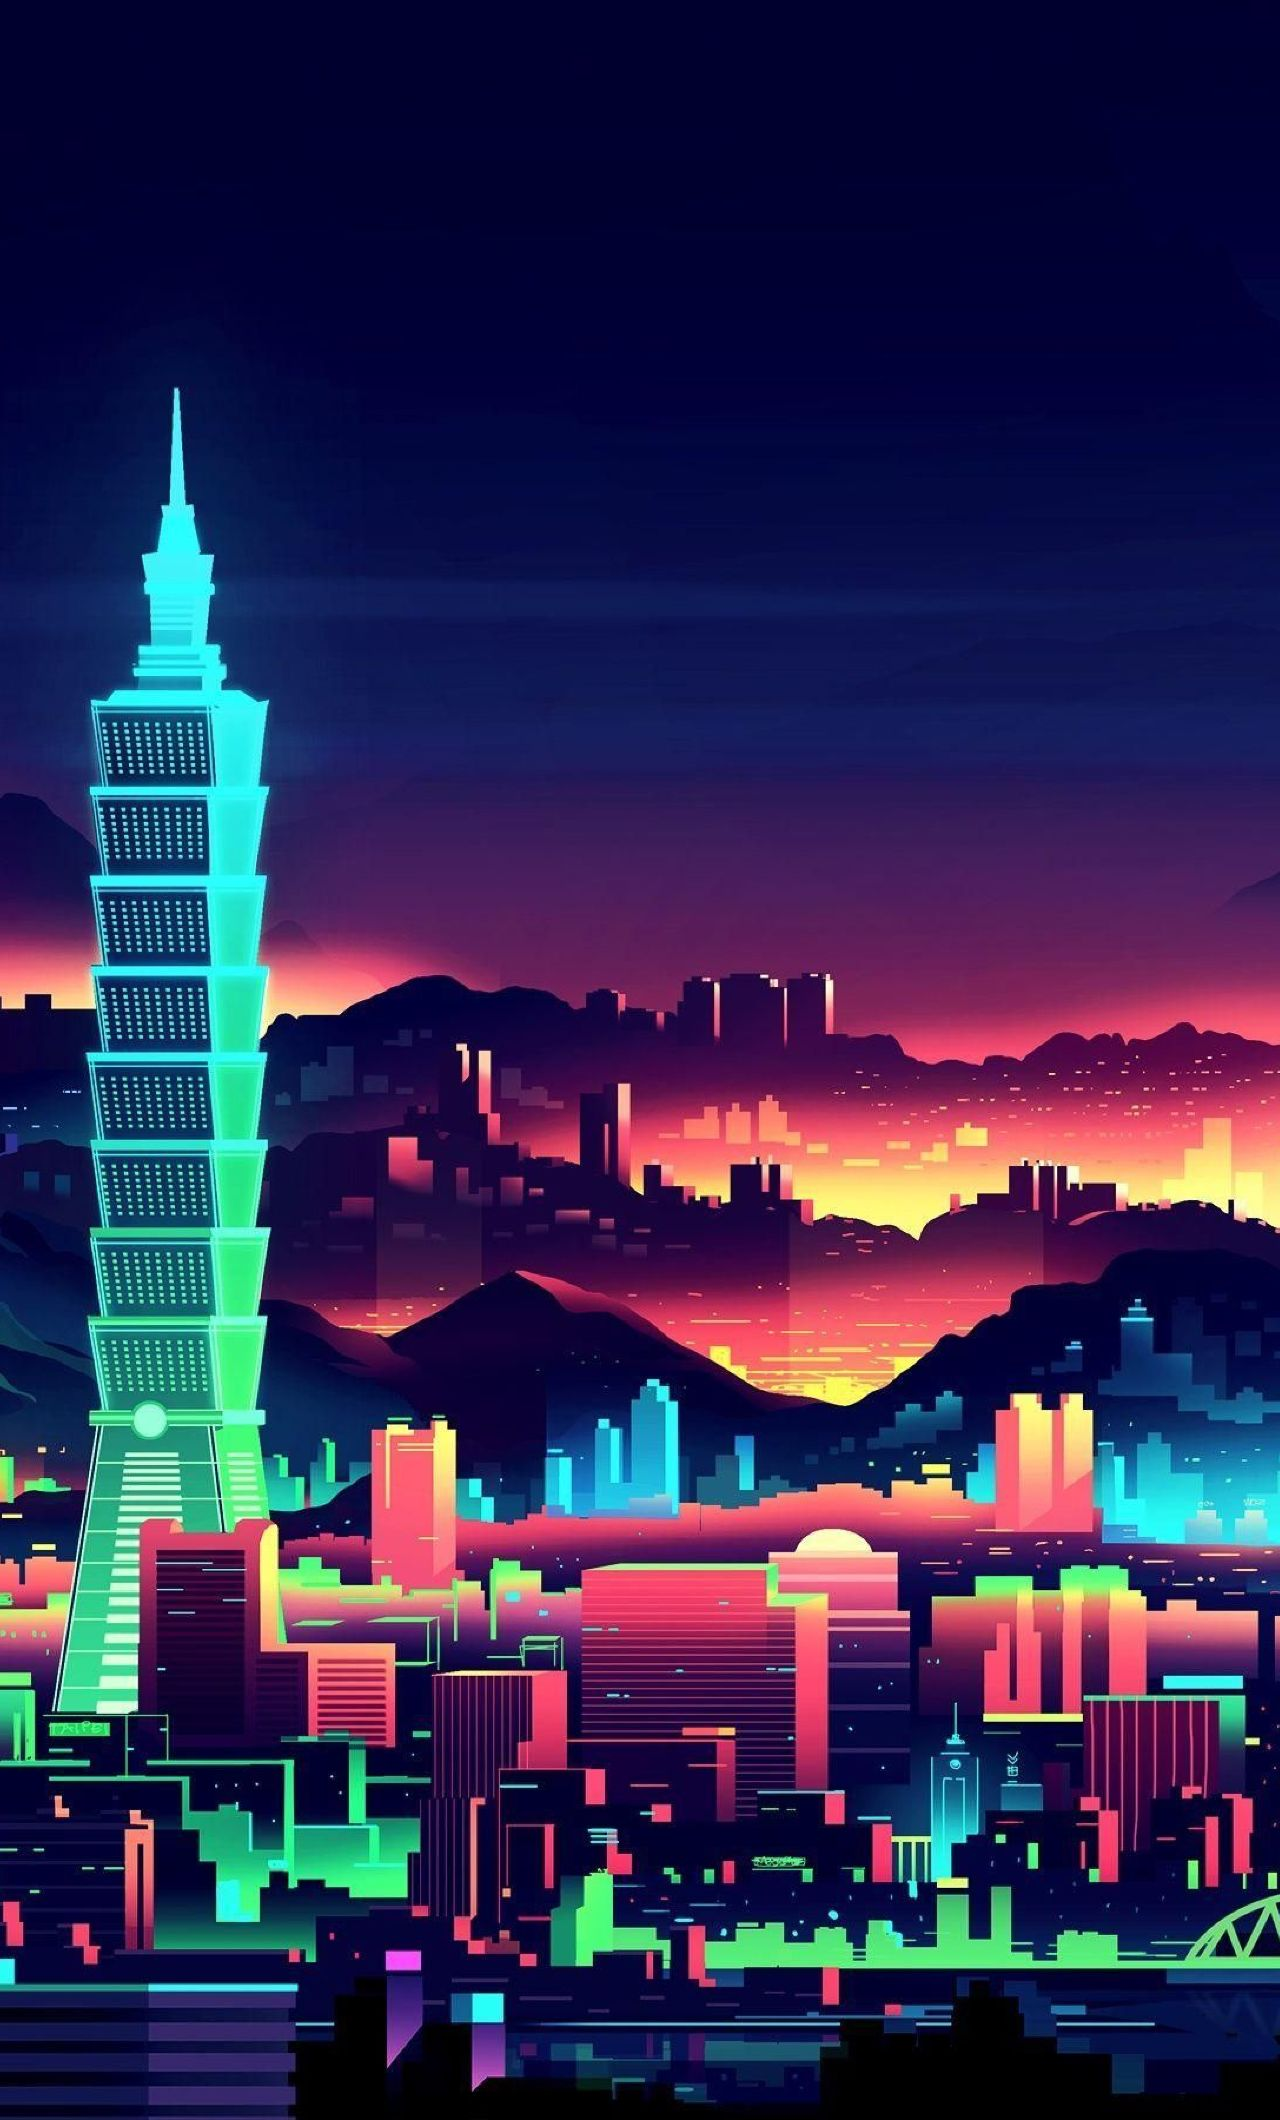 1280x2120 Retro 80s Digital Minimalism City Iphone 6 Plus